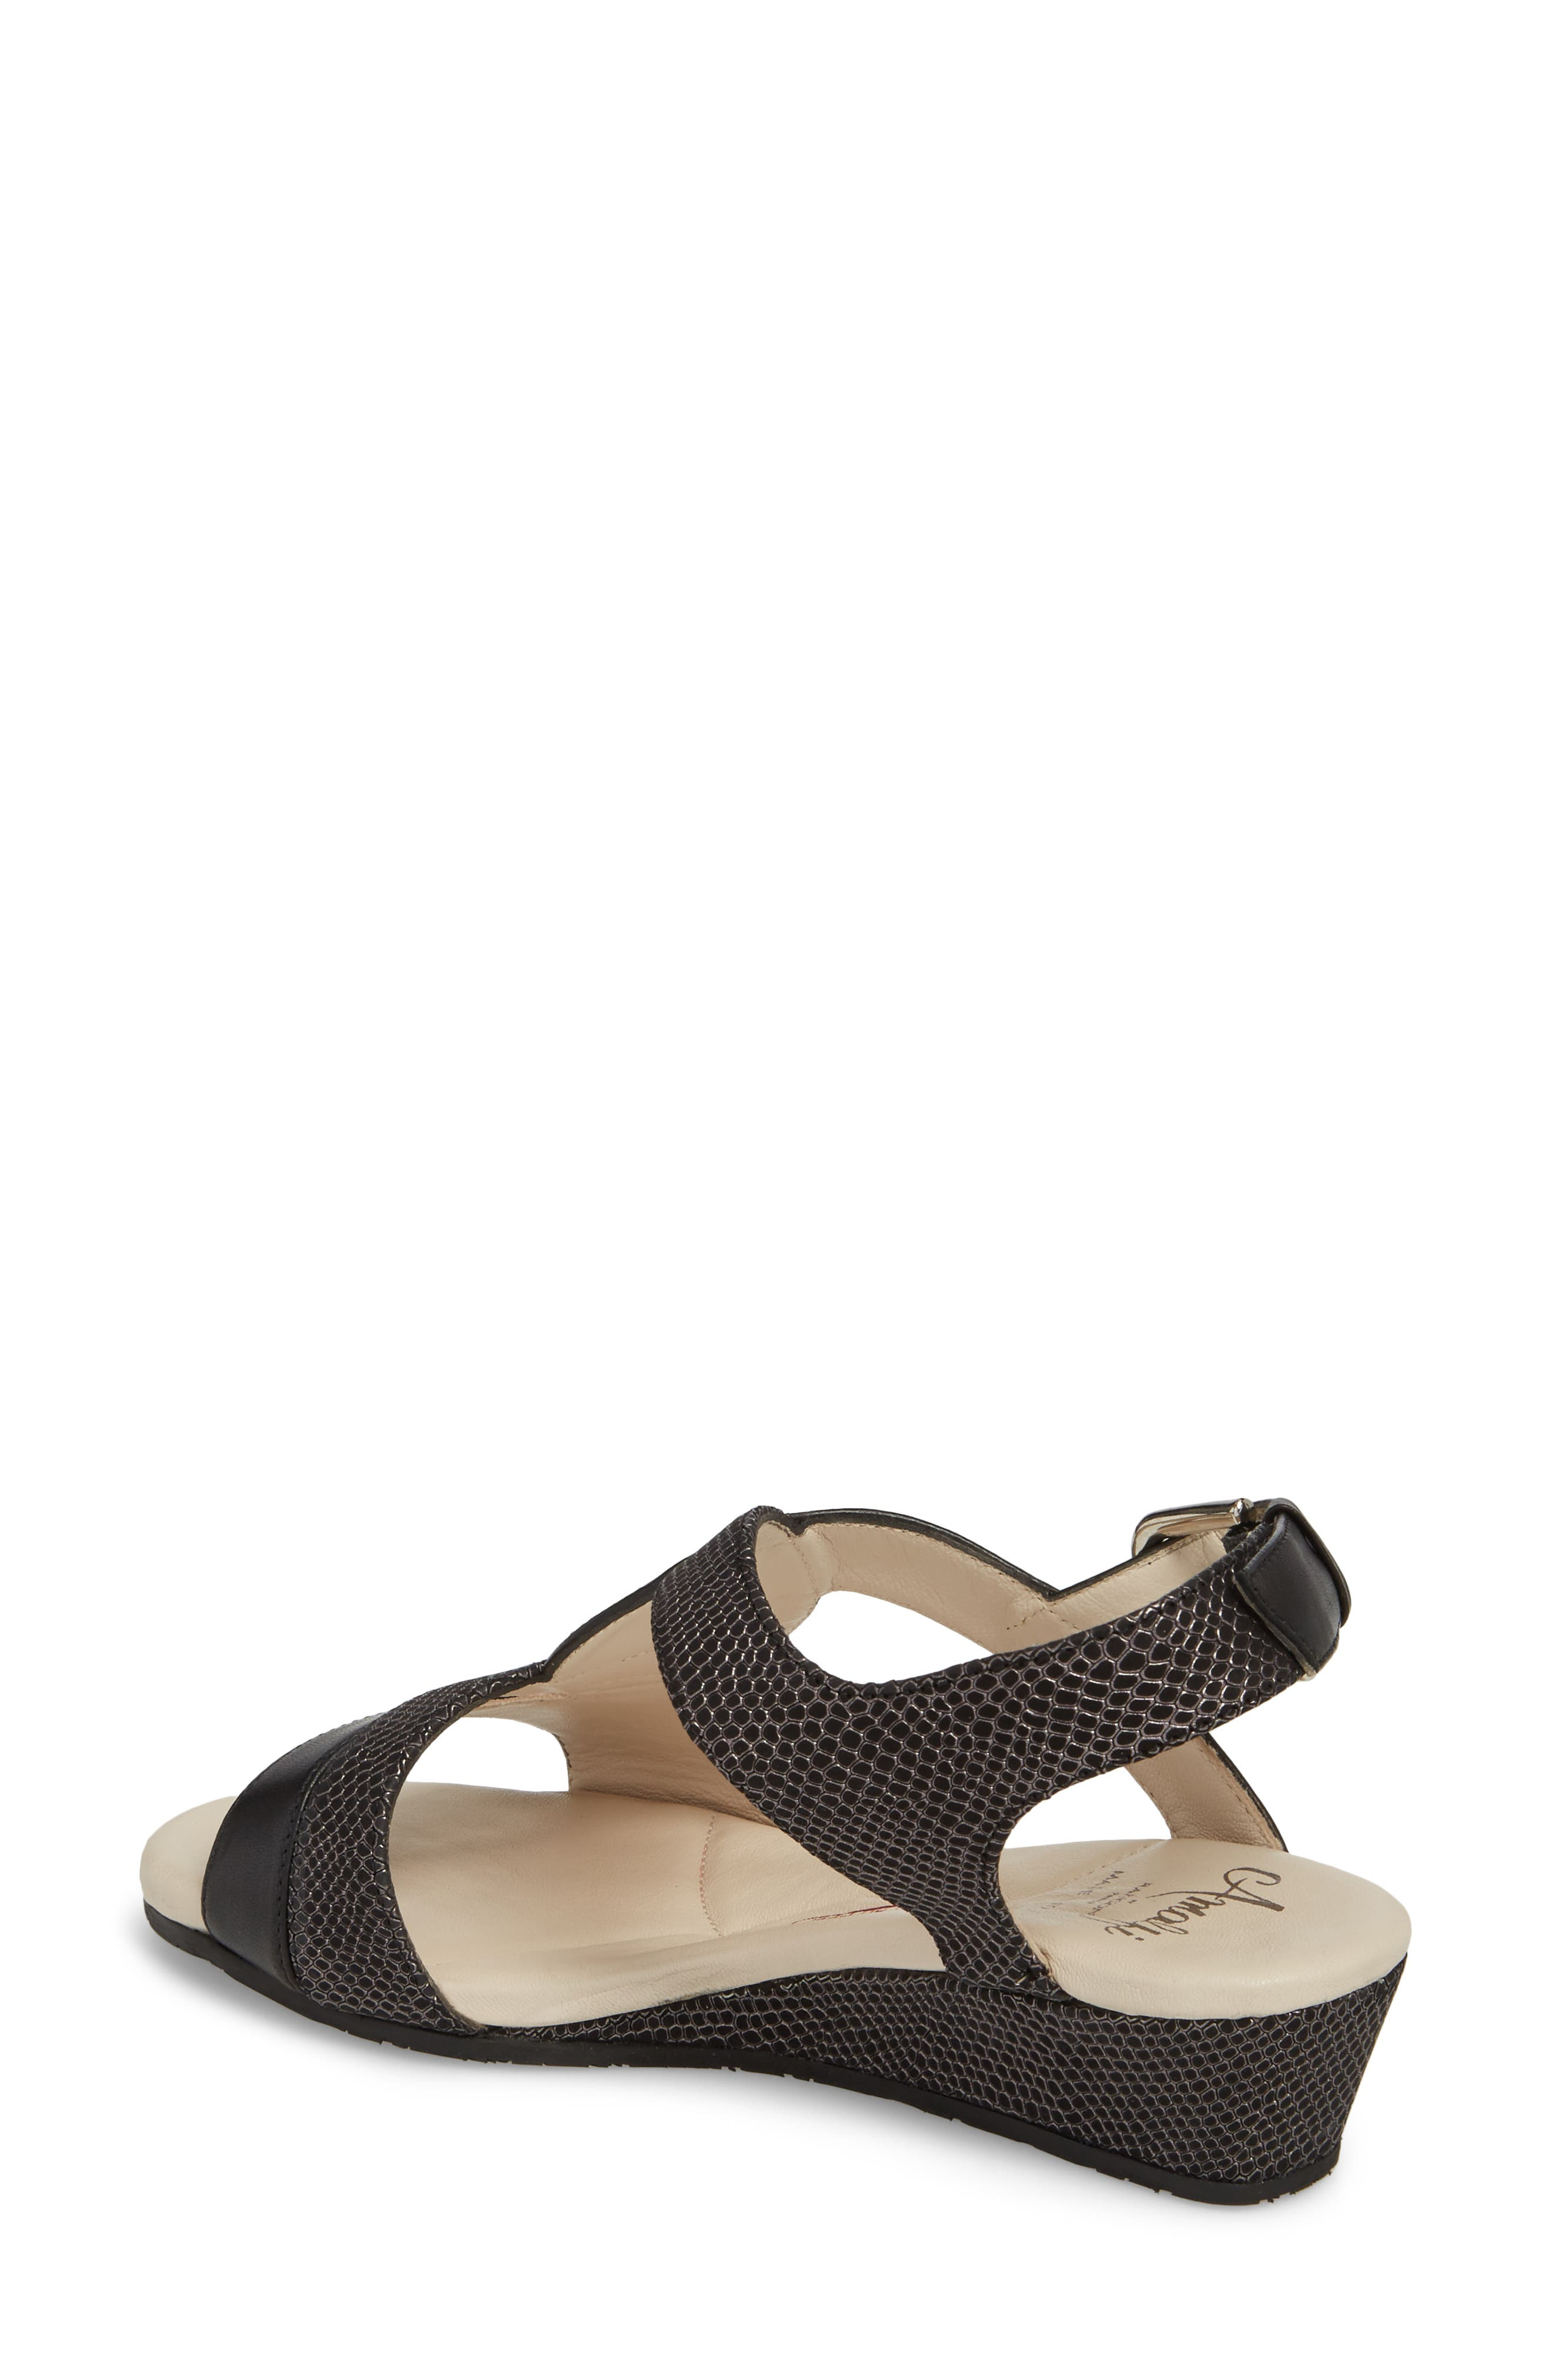 Morosa Wedge Sandal,                             Alternate thumbnail 2, color,                             GRAPHITE LEATHER